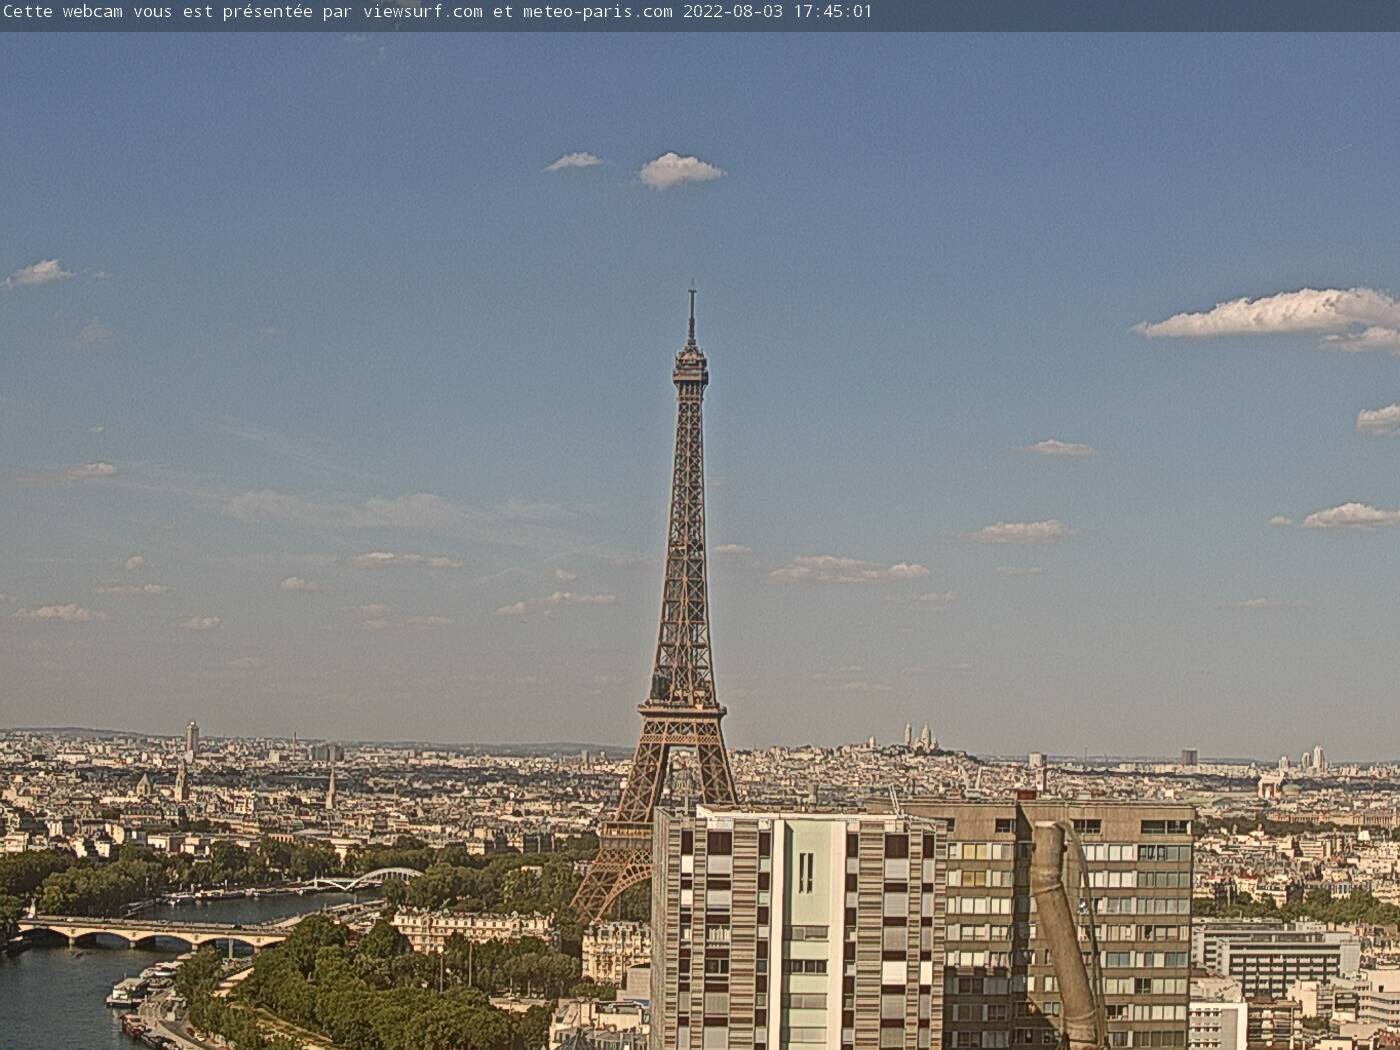 https://media.webcam-hd.fr/Pariscam3_1280x960.jpg